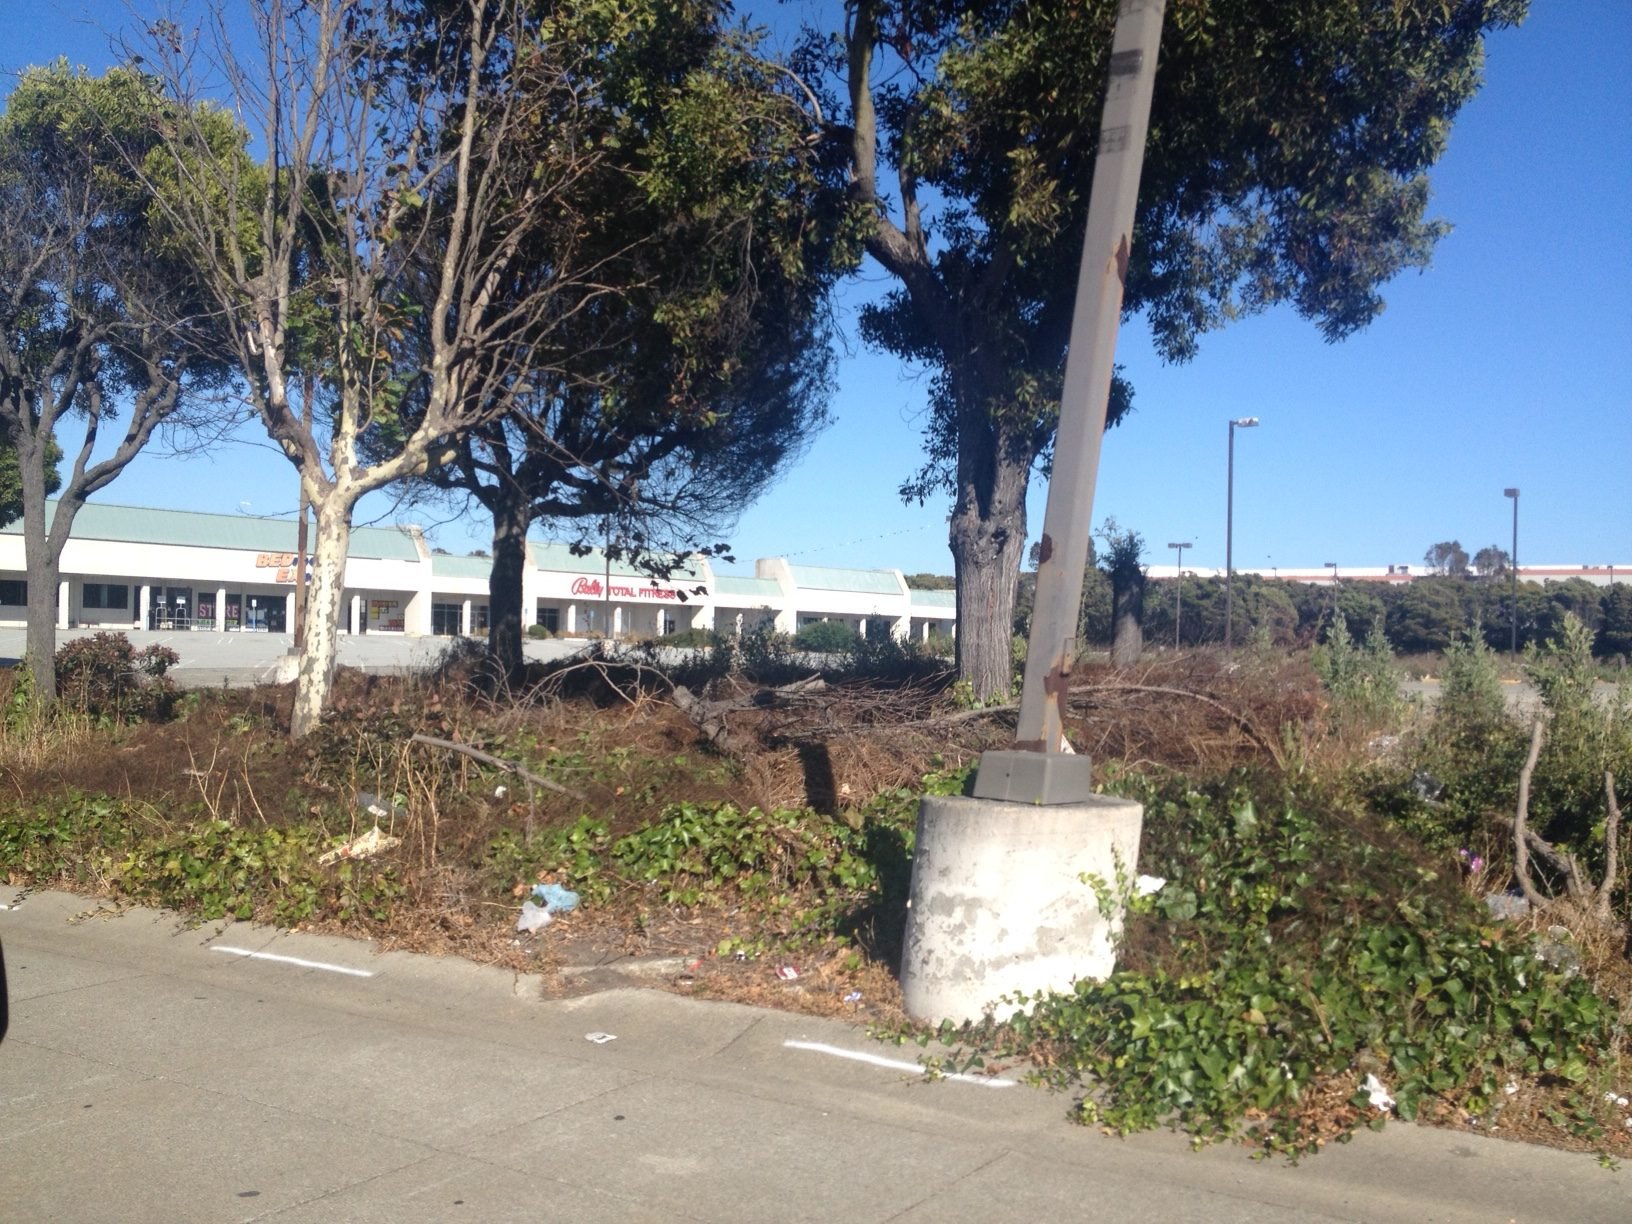 Dead trees, vegetation, and trash blight the abandoned shopping center